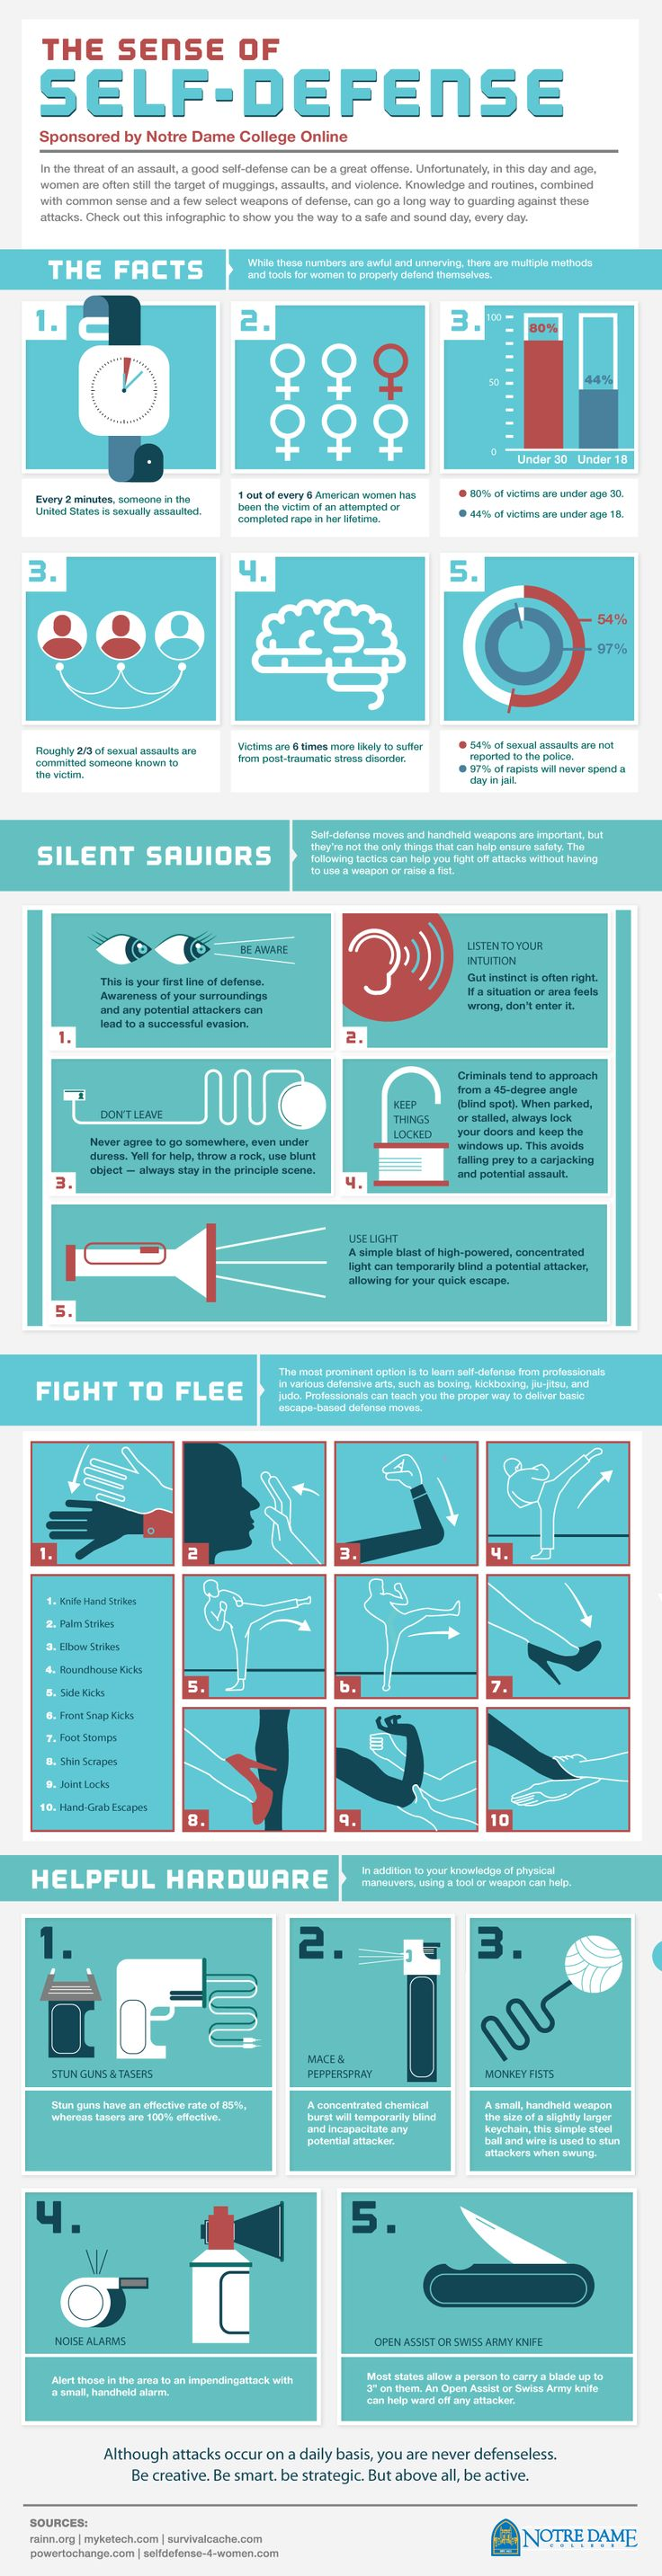 7 Self Defense Techniques You Need To Know